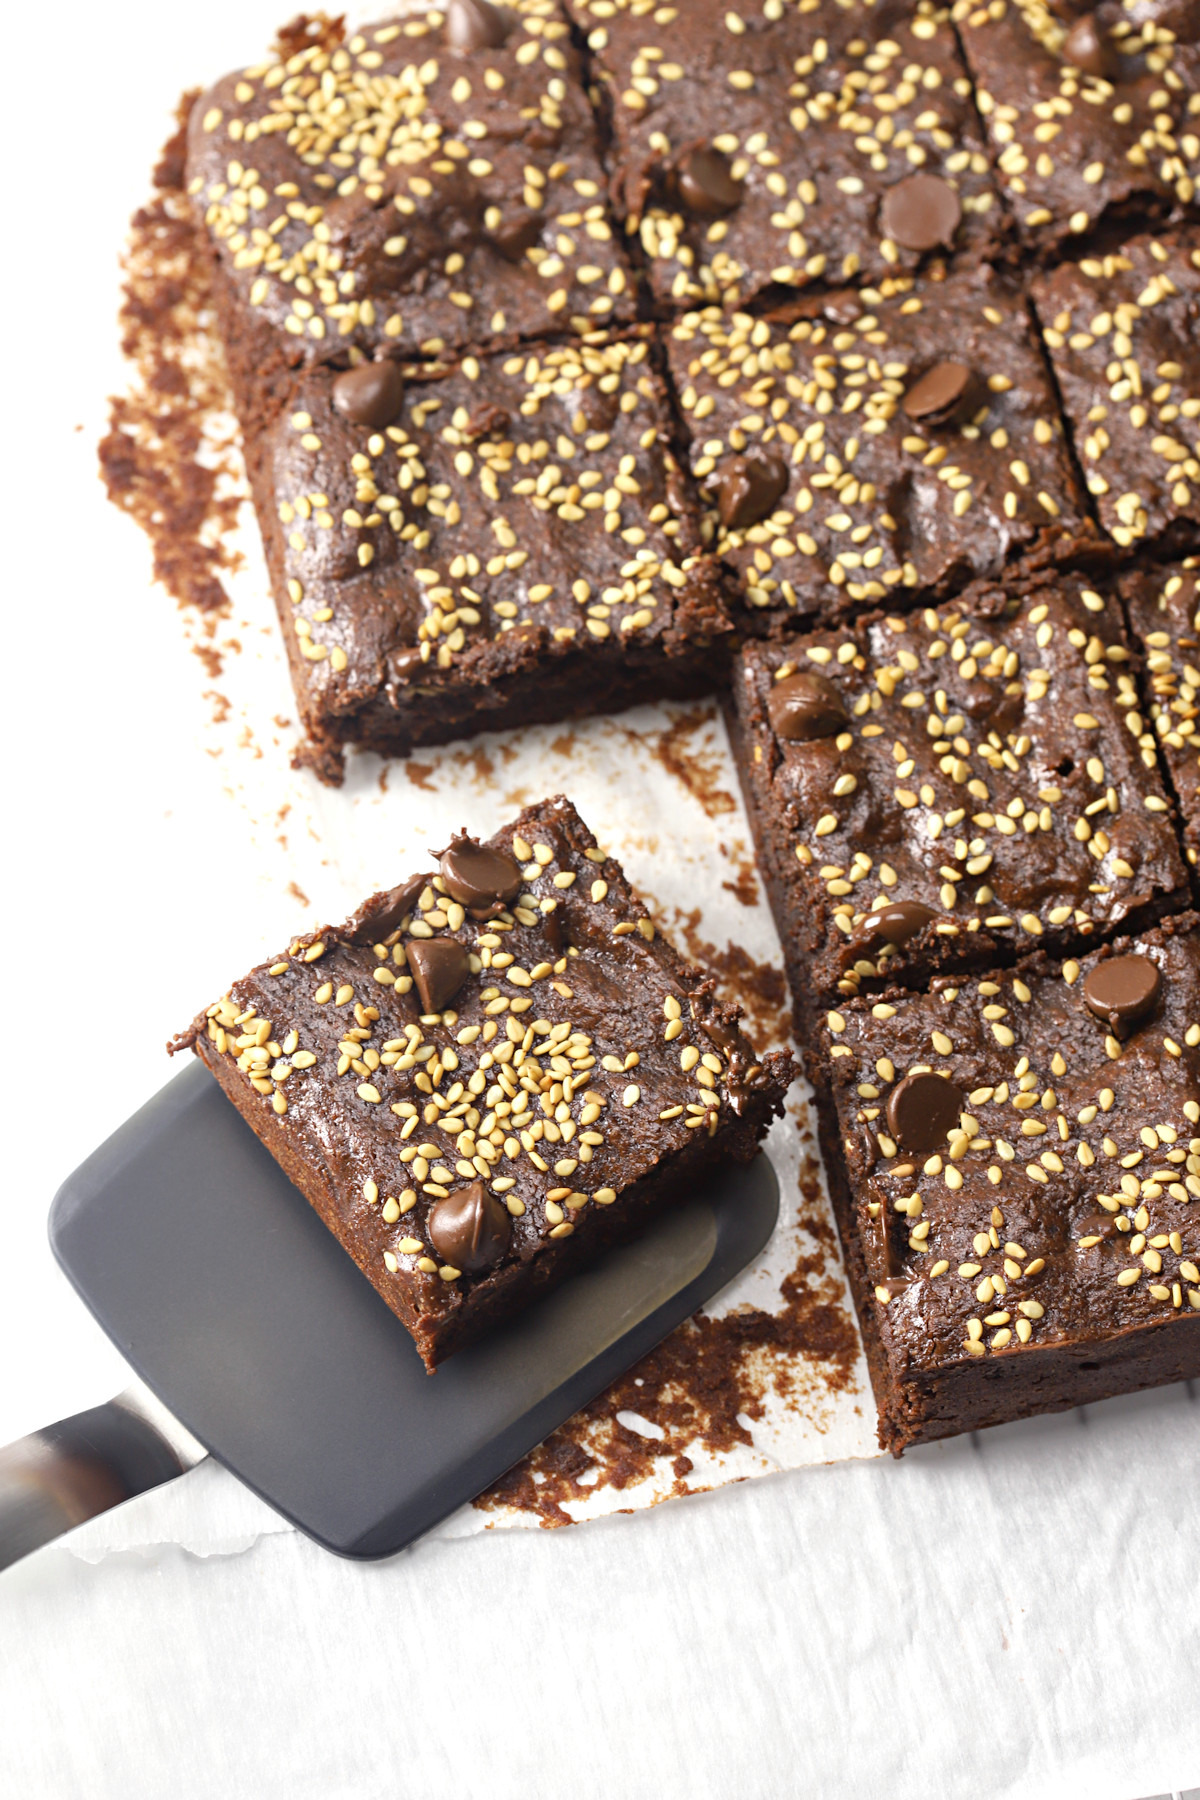 Slicing and serving tahini brownies.